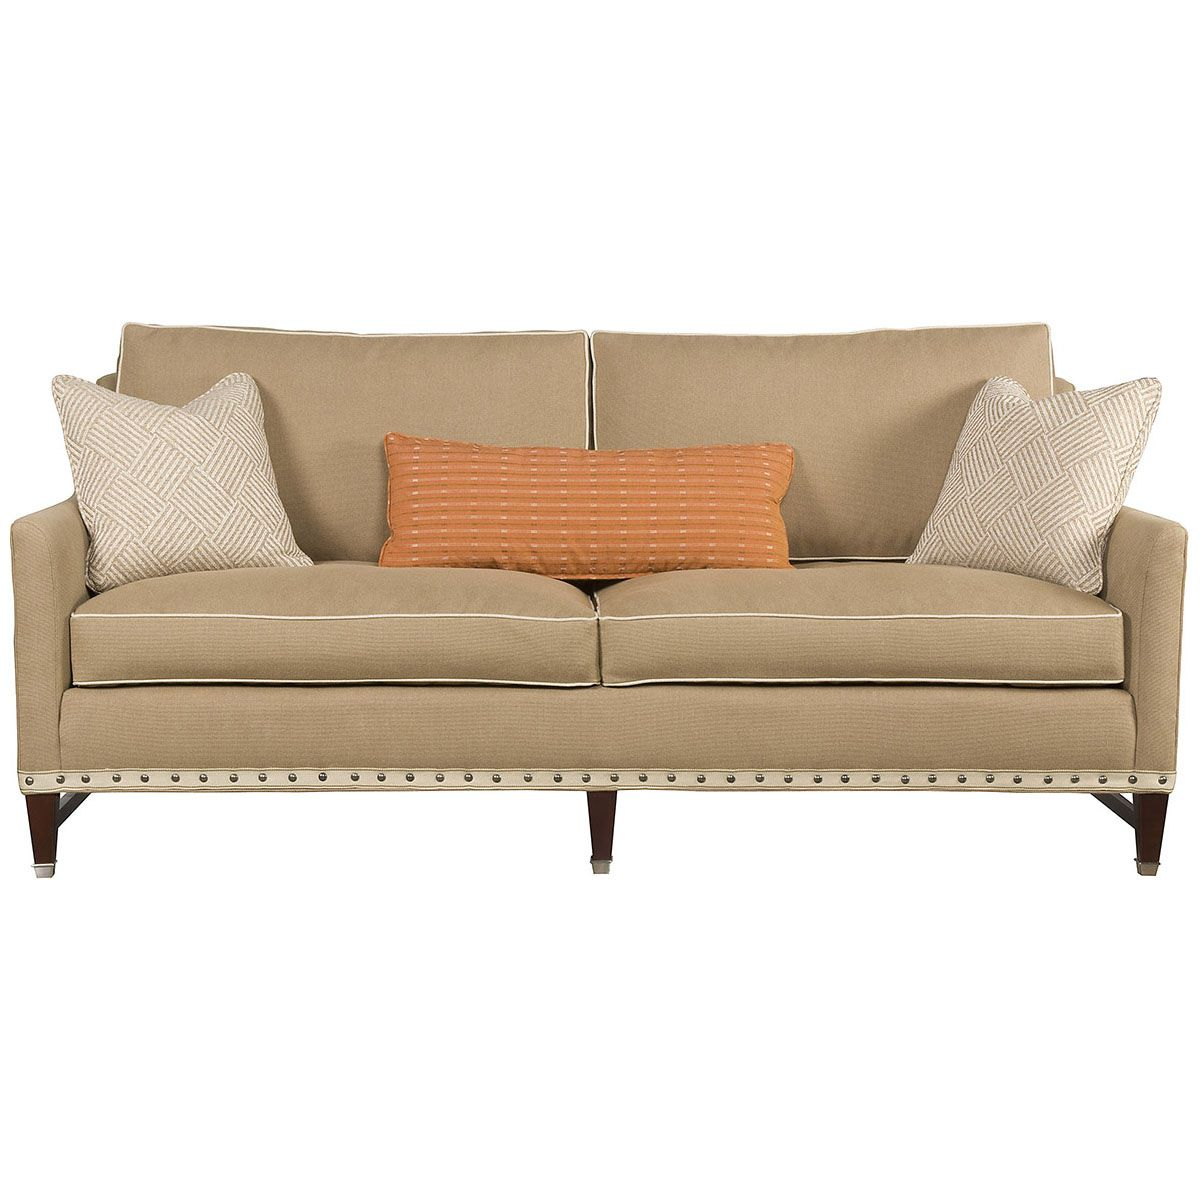 Vanguard Furniture Eva Sofa V330 S